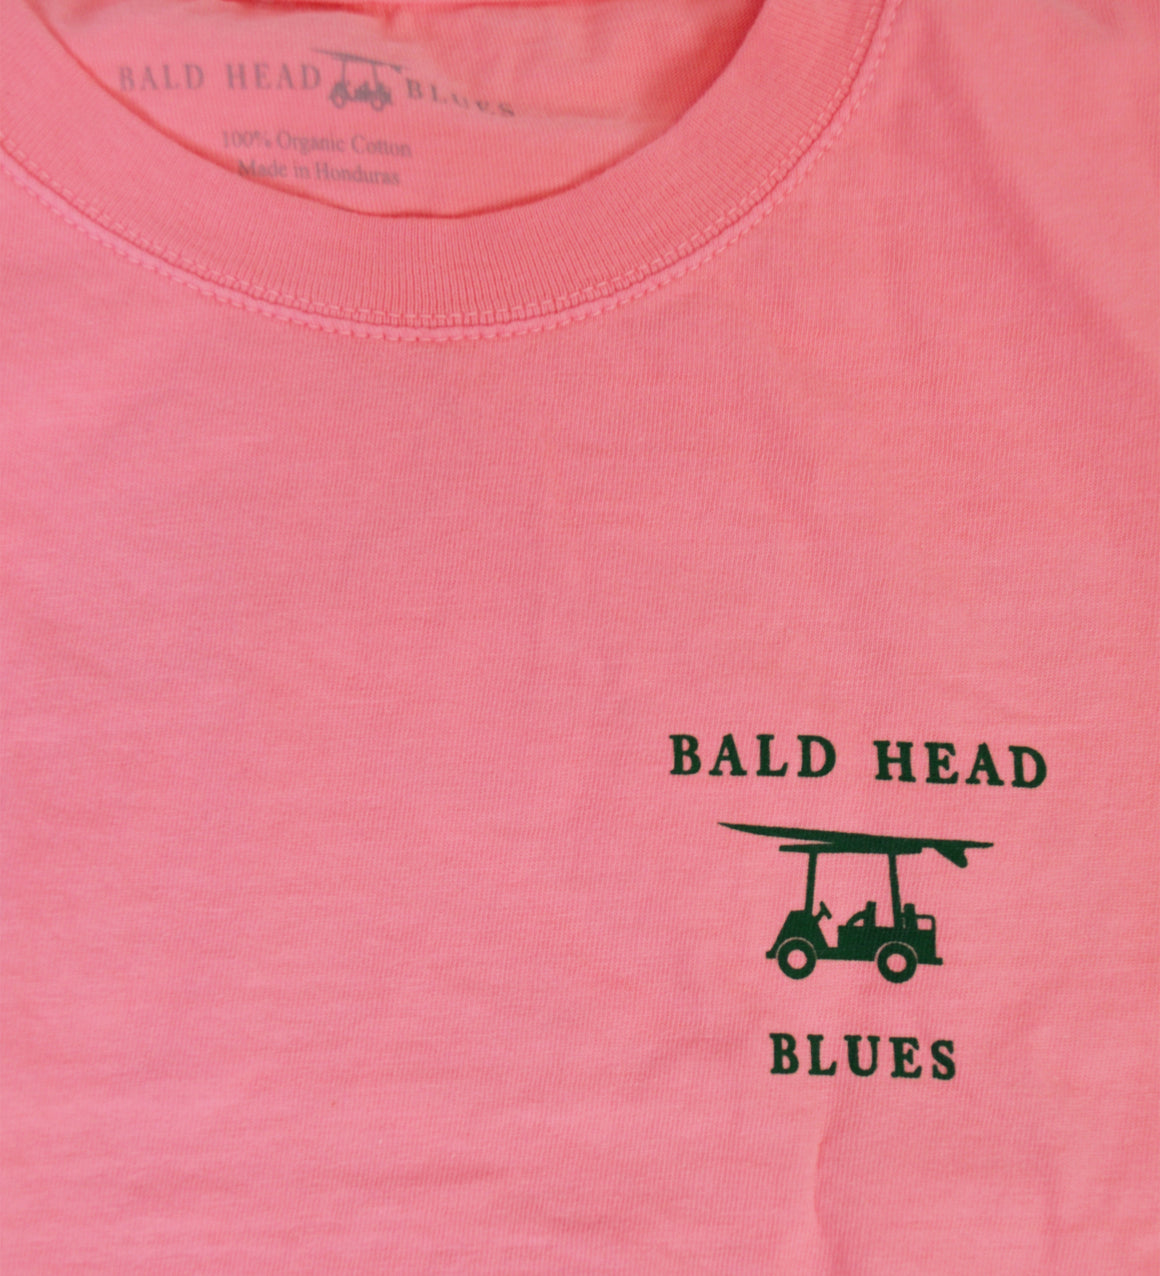 Island Tee - Youth Short Sleeve - Pink Turtle Time